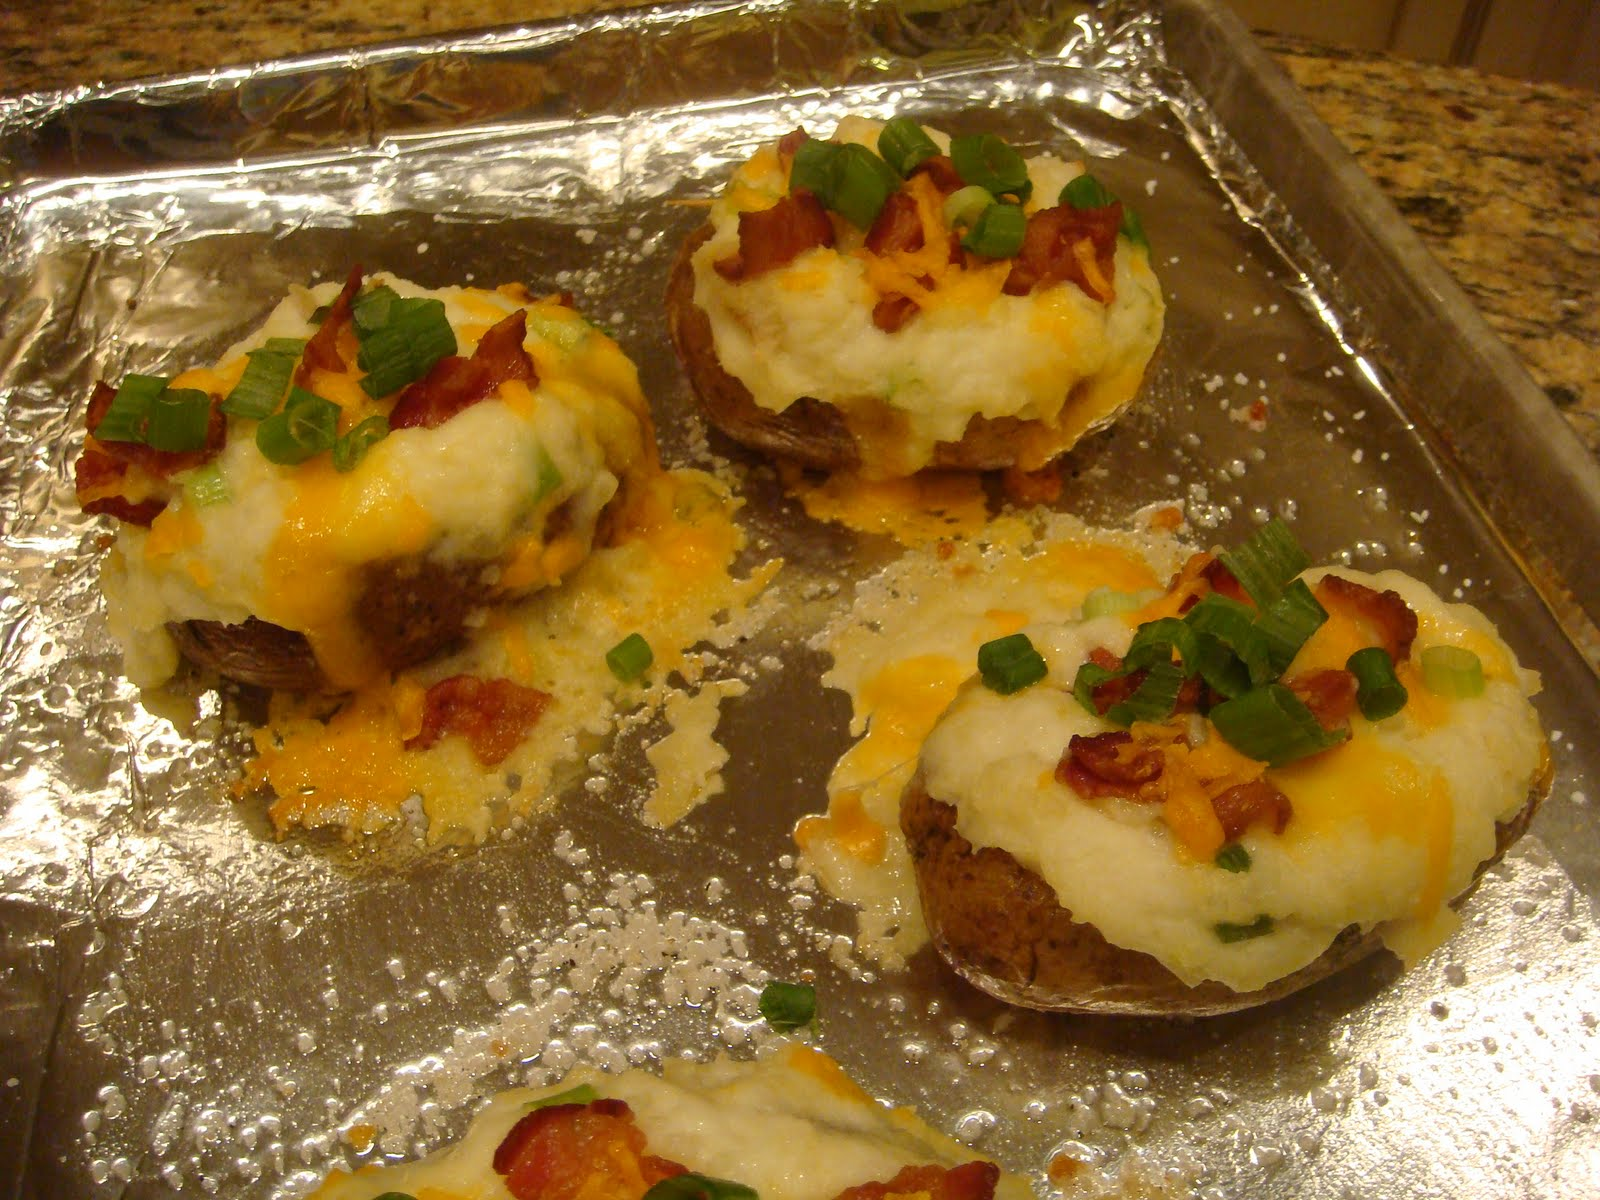 Our Blissfully Delicious Life: Twice Baked & Over Stuffed Potatoes